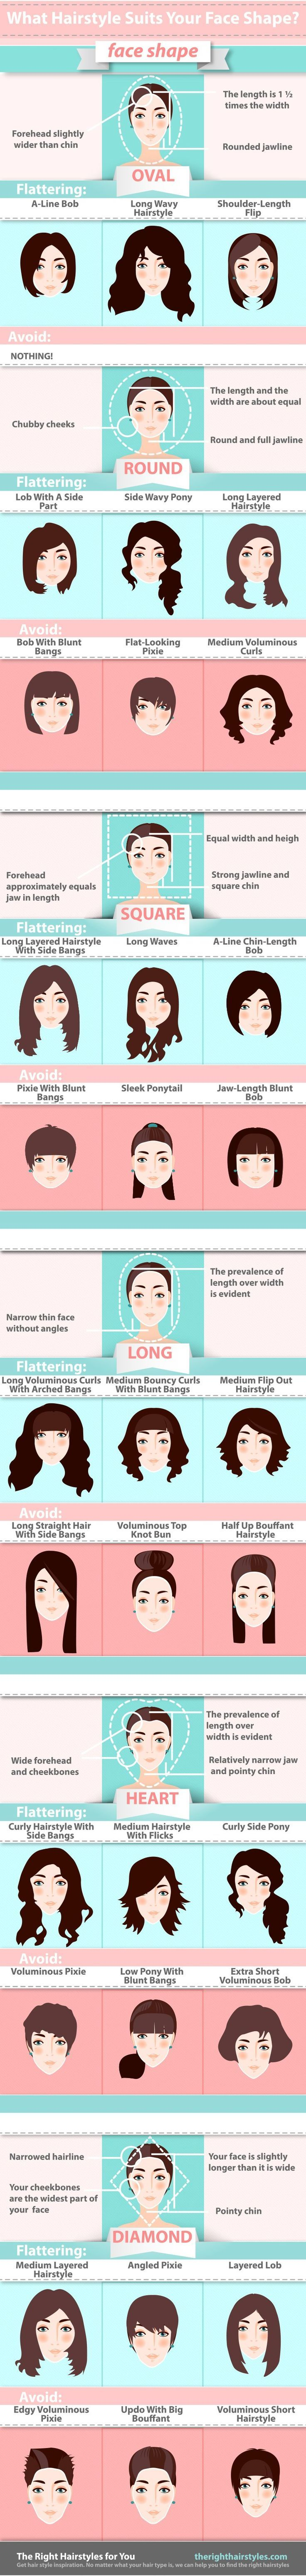 infographic | The Ultimate Hairstyle Guide For Your Face Shape...